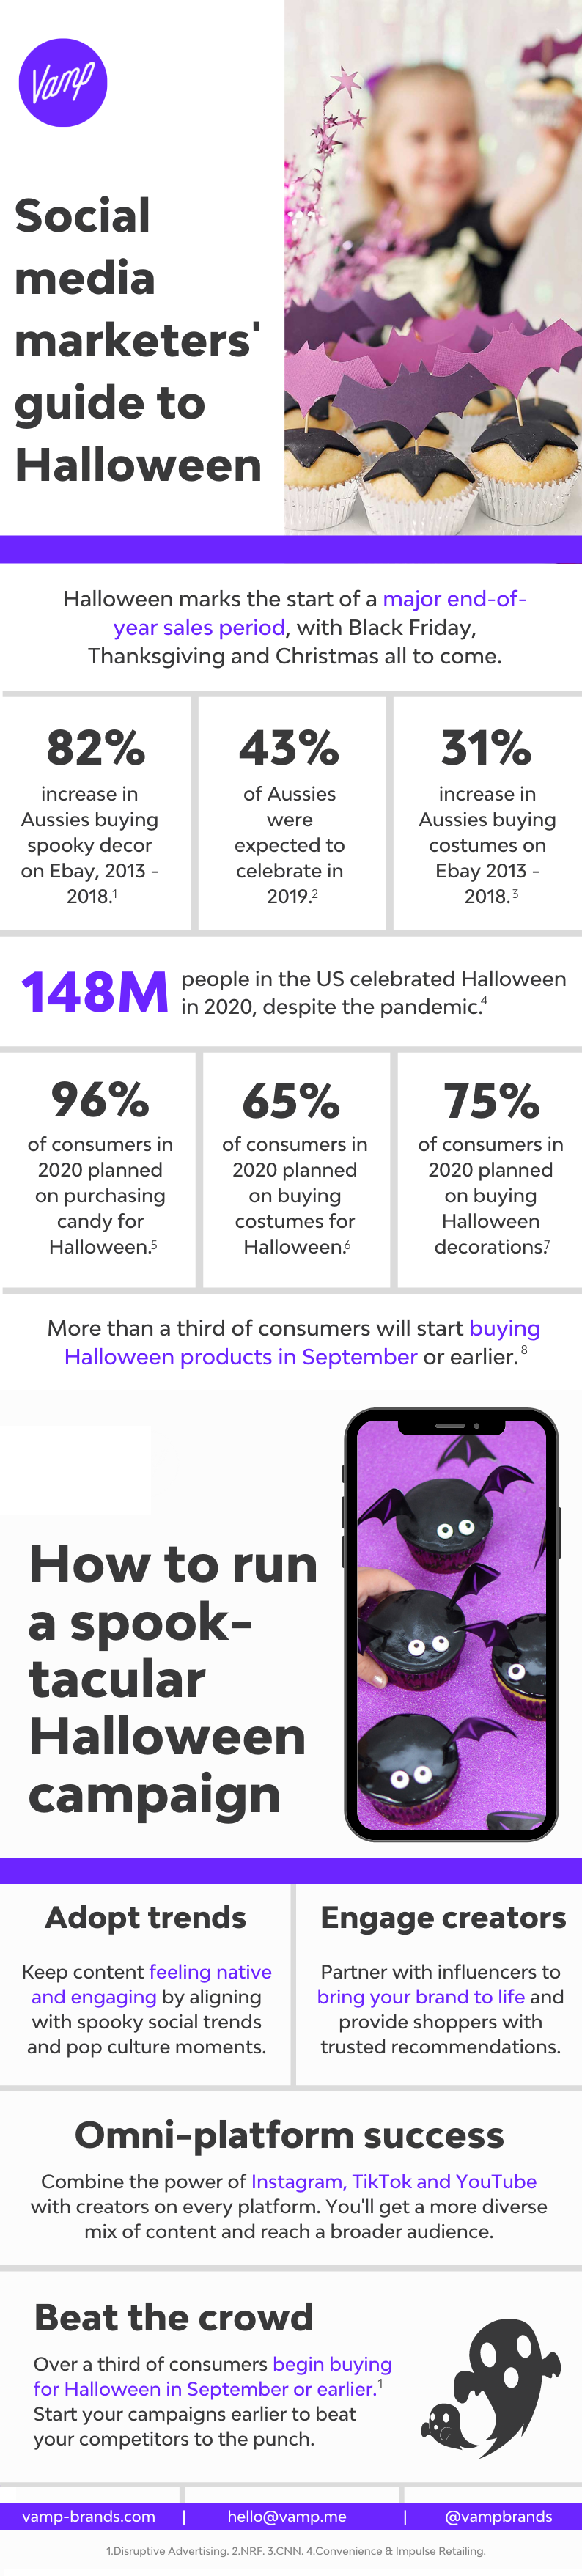 Halloween stats and tips infographic